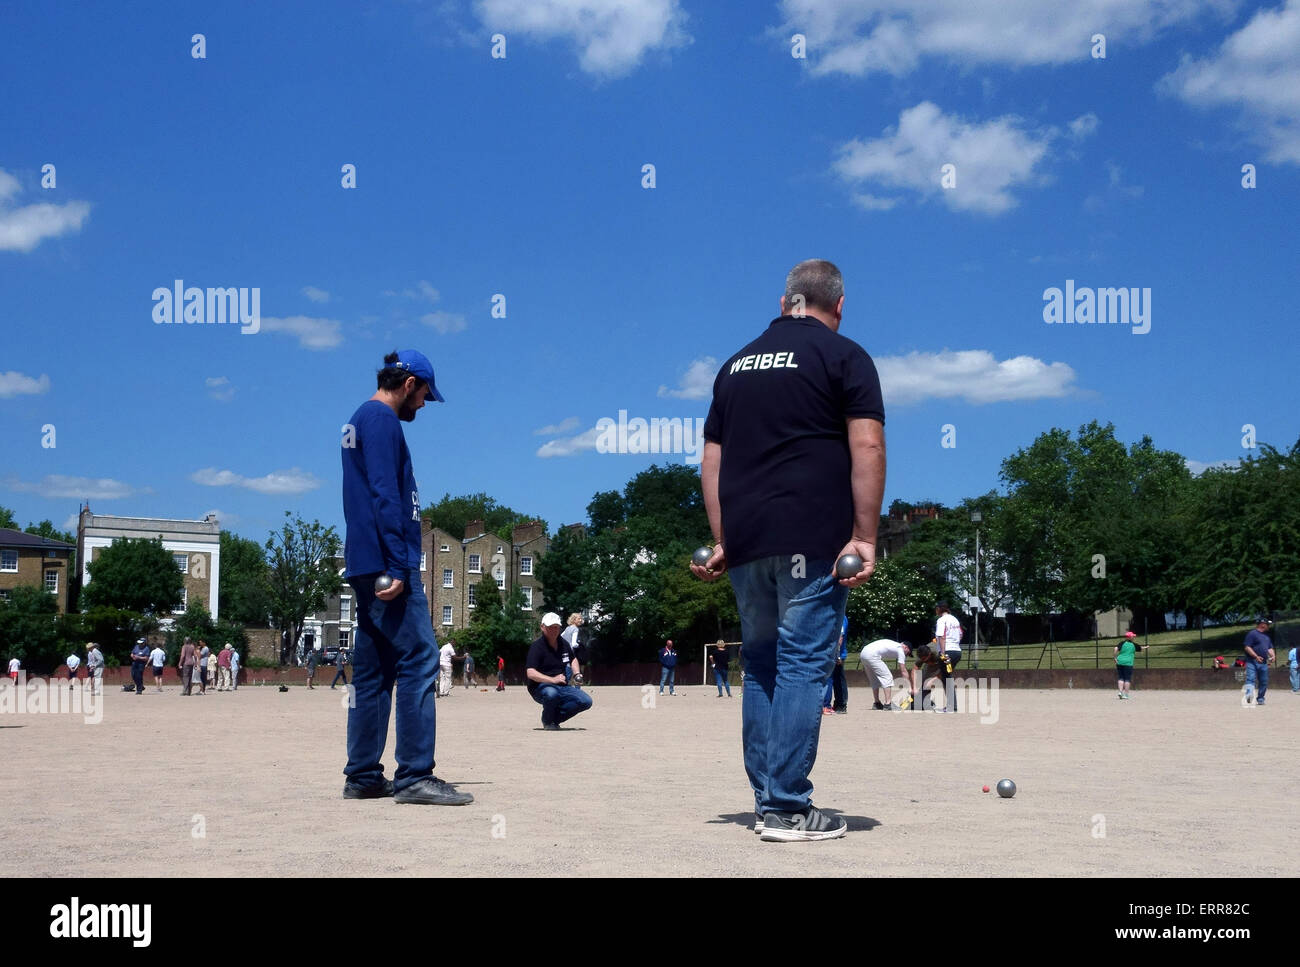 London, UK. 7th June, 2015. The Londonaise 2015 Petanque Tournament reached its final stage in Islington, London Stock Photo